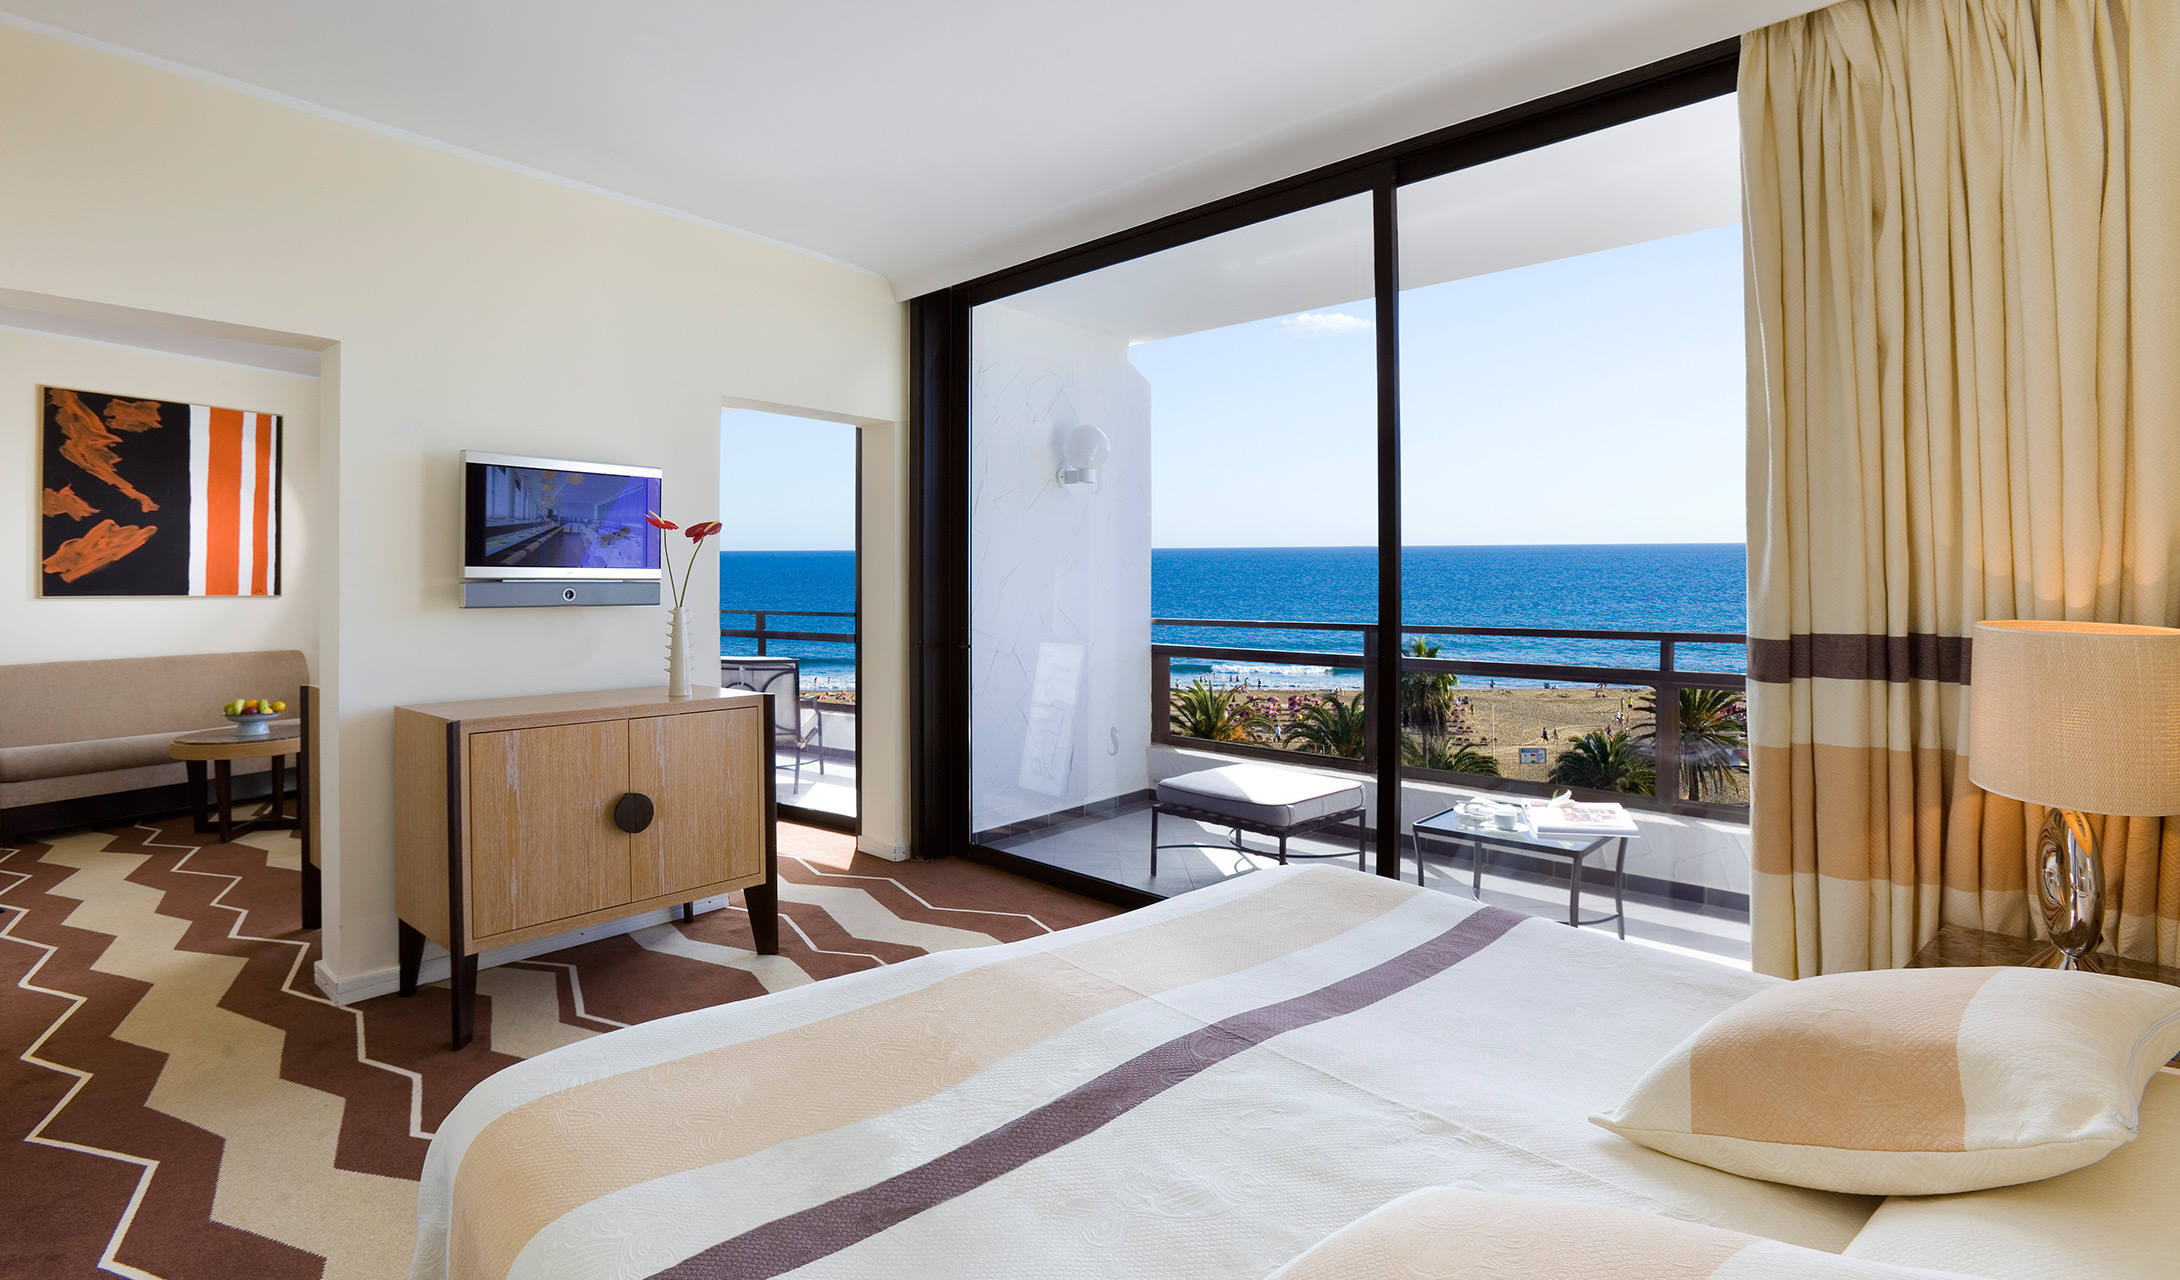 Seaside palm beach maspalomas spain design hotels for Design hotels